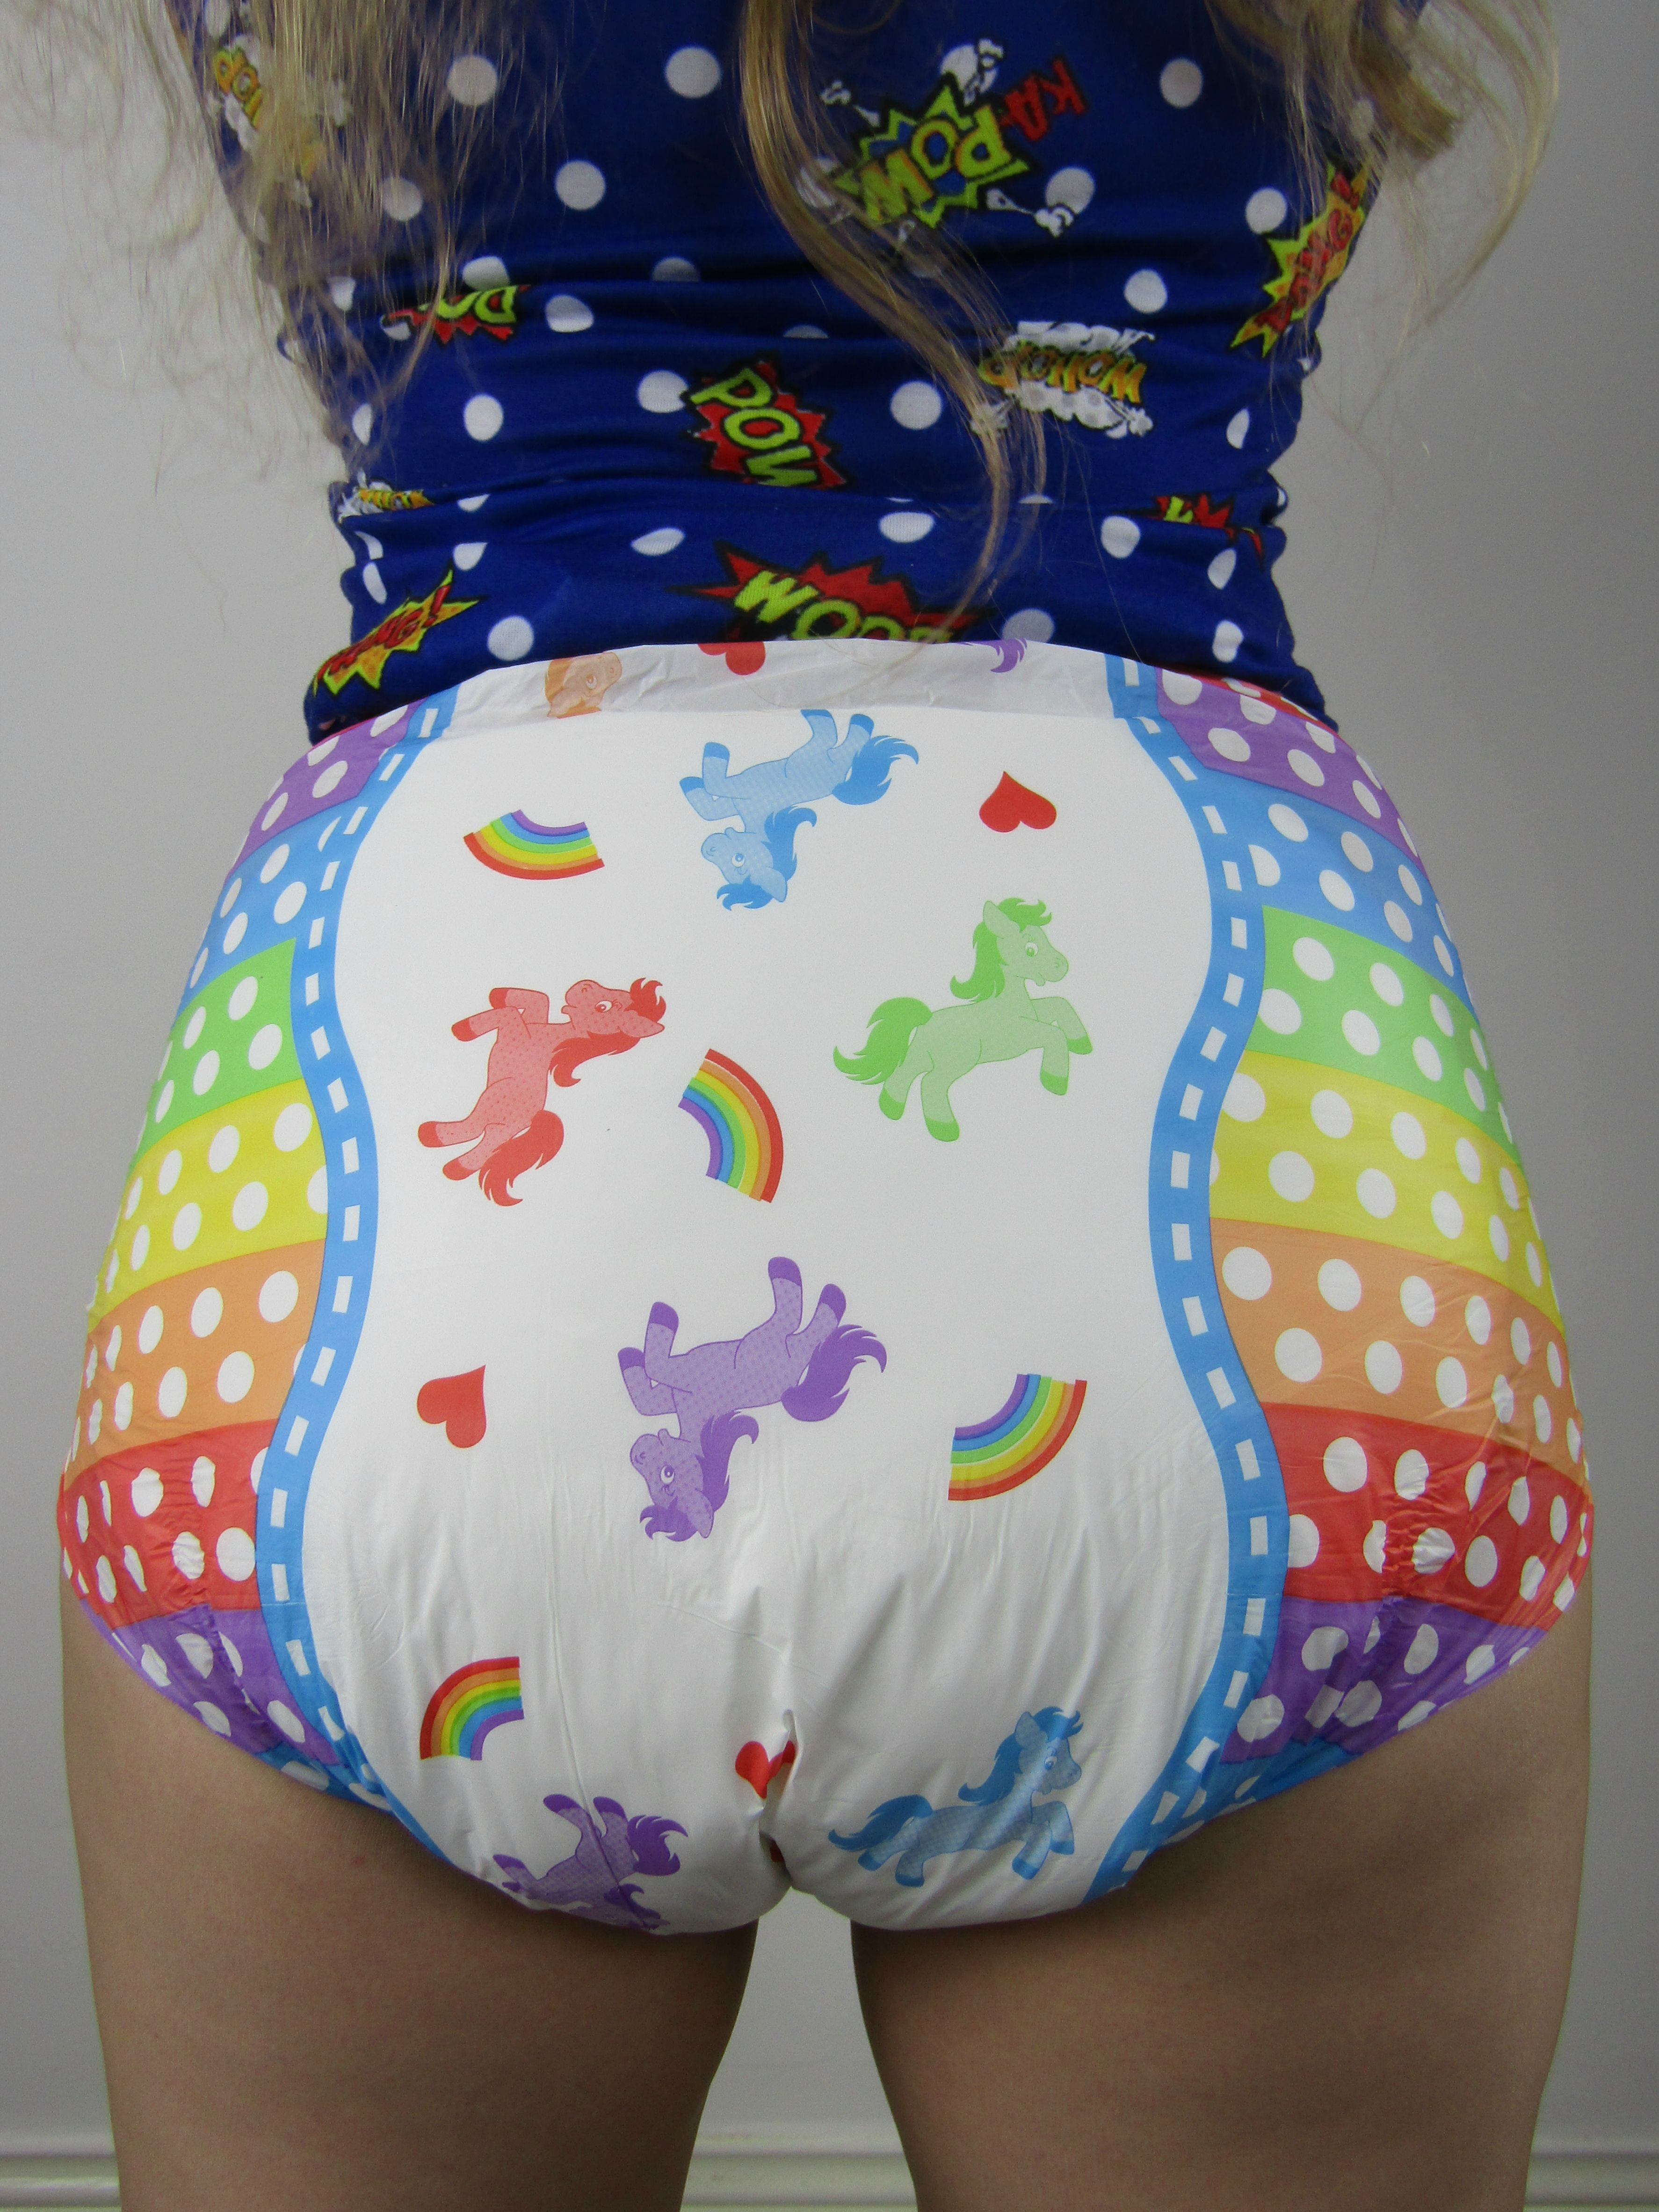 Pin by Diapered Little on ABDL | Pinterest | Pañales, Telas and Pañales de  tela